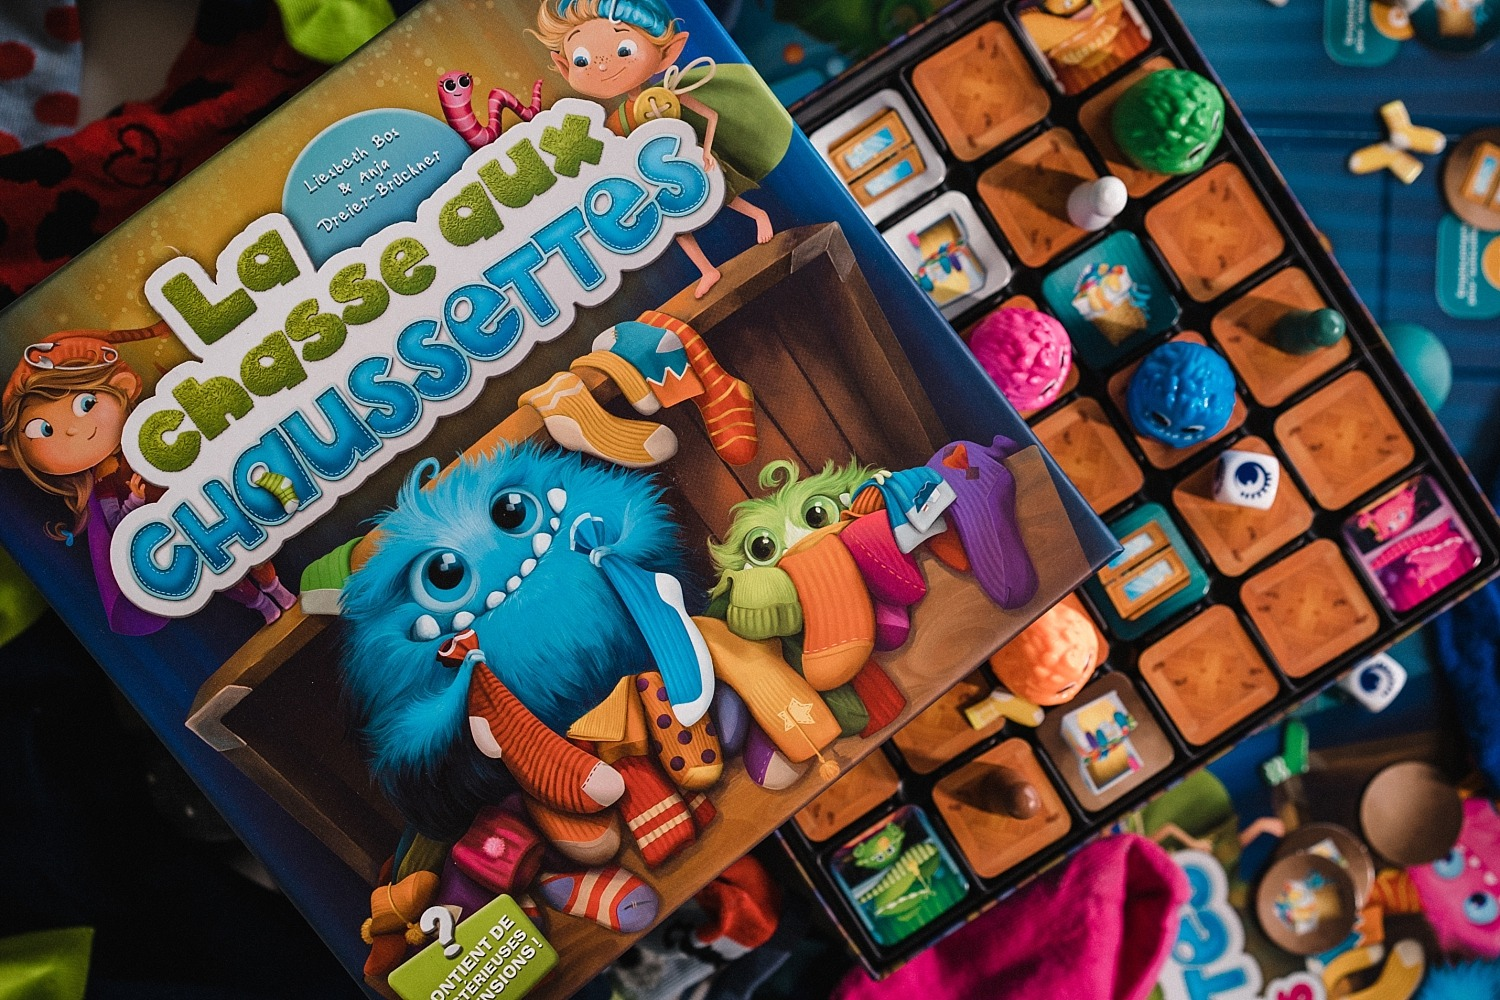 Chasse aux chaussettes lifestyle boardgame